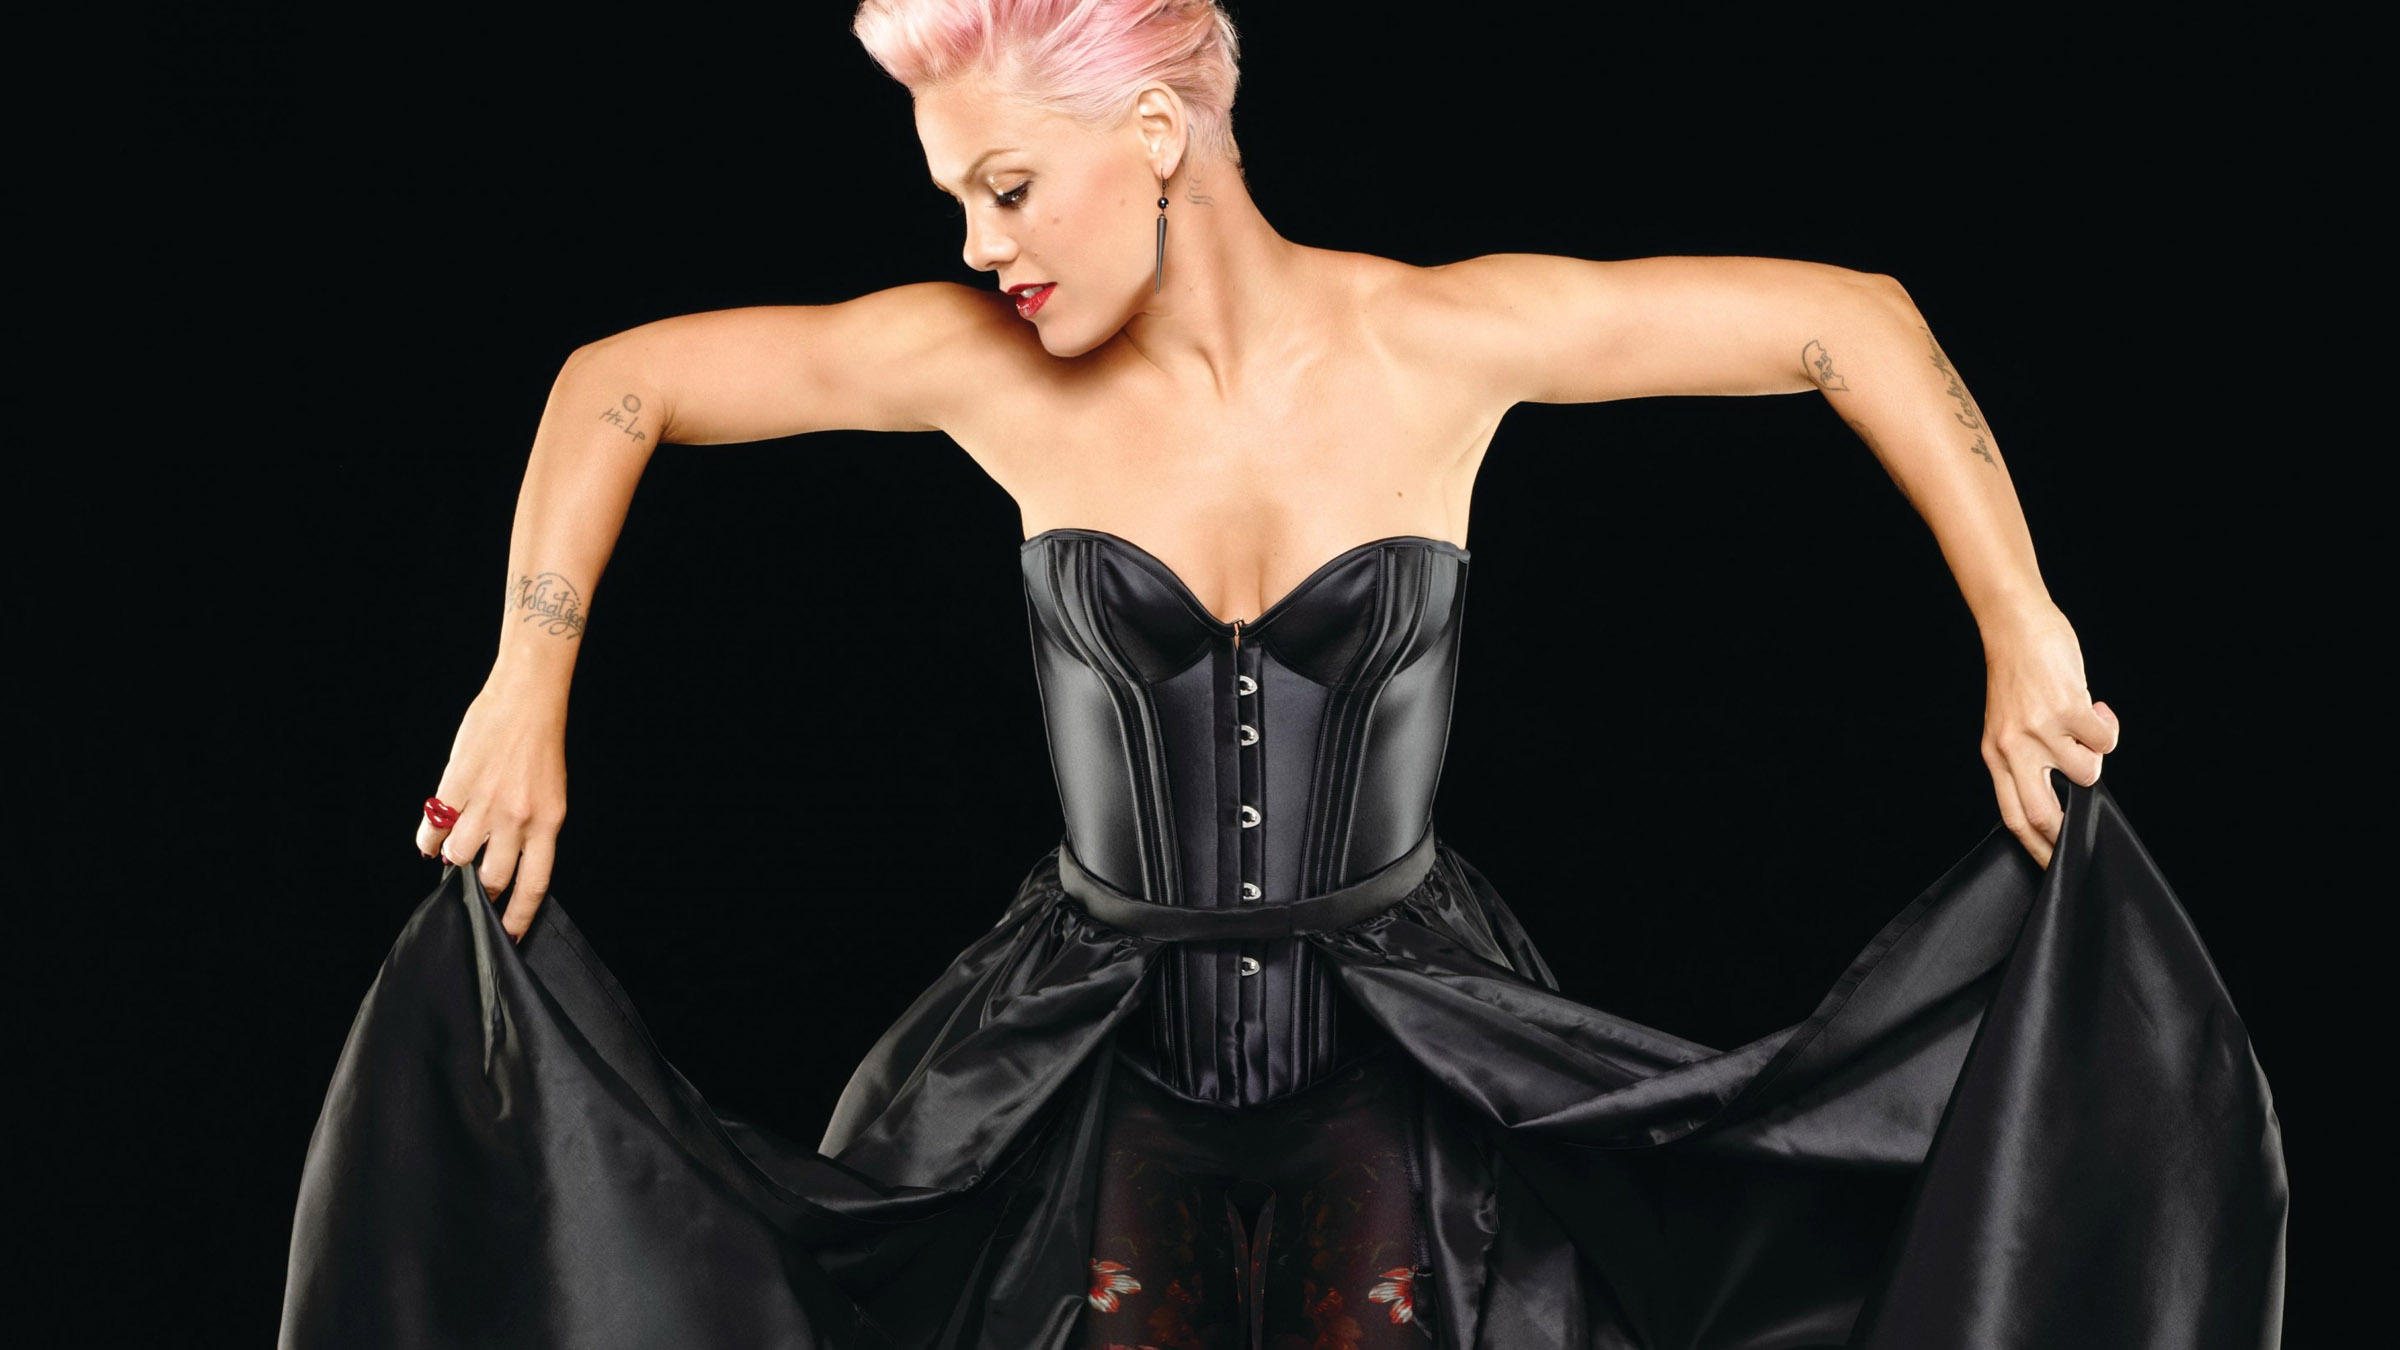 P nk pevica alecia beth moore pink 2400x1350